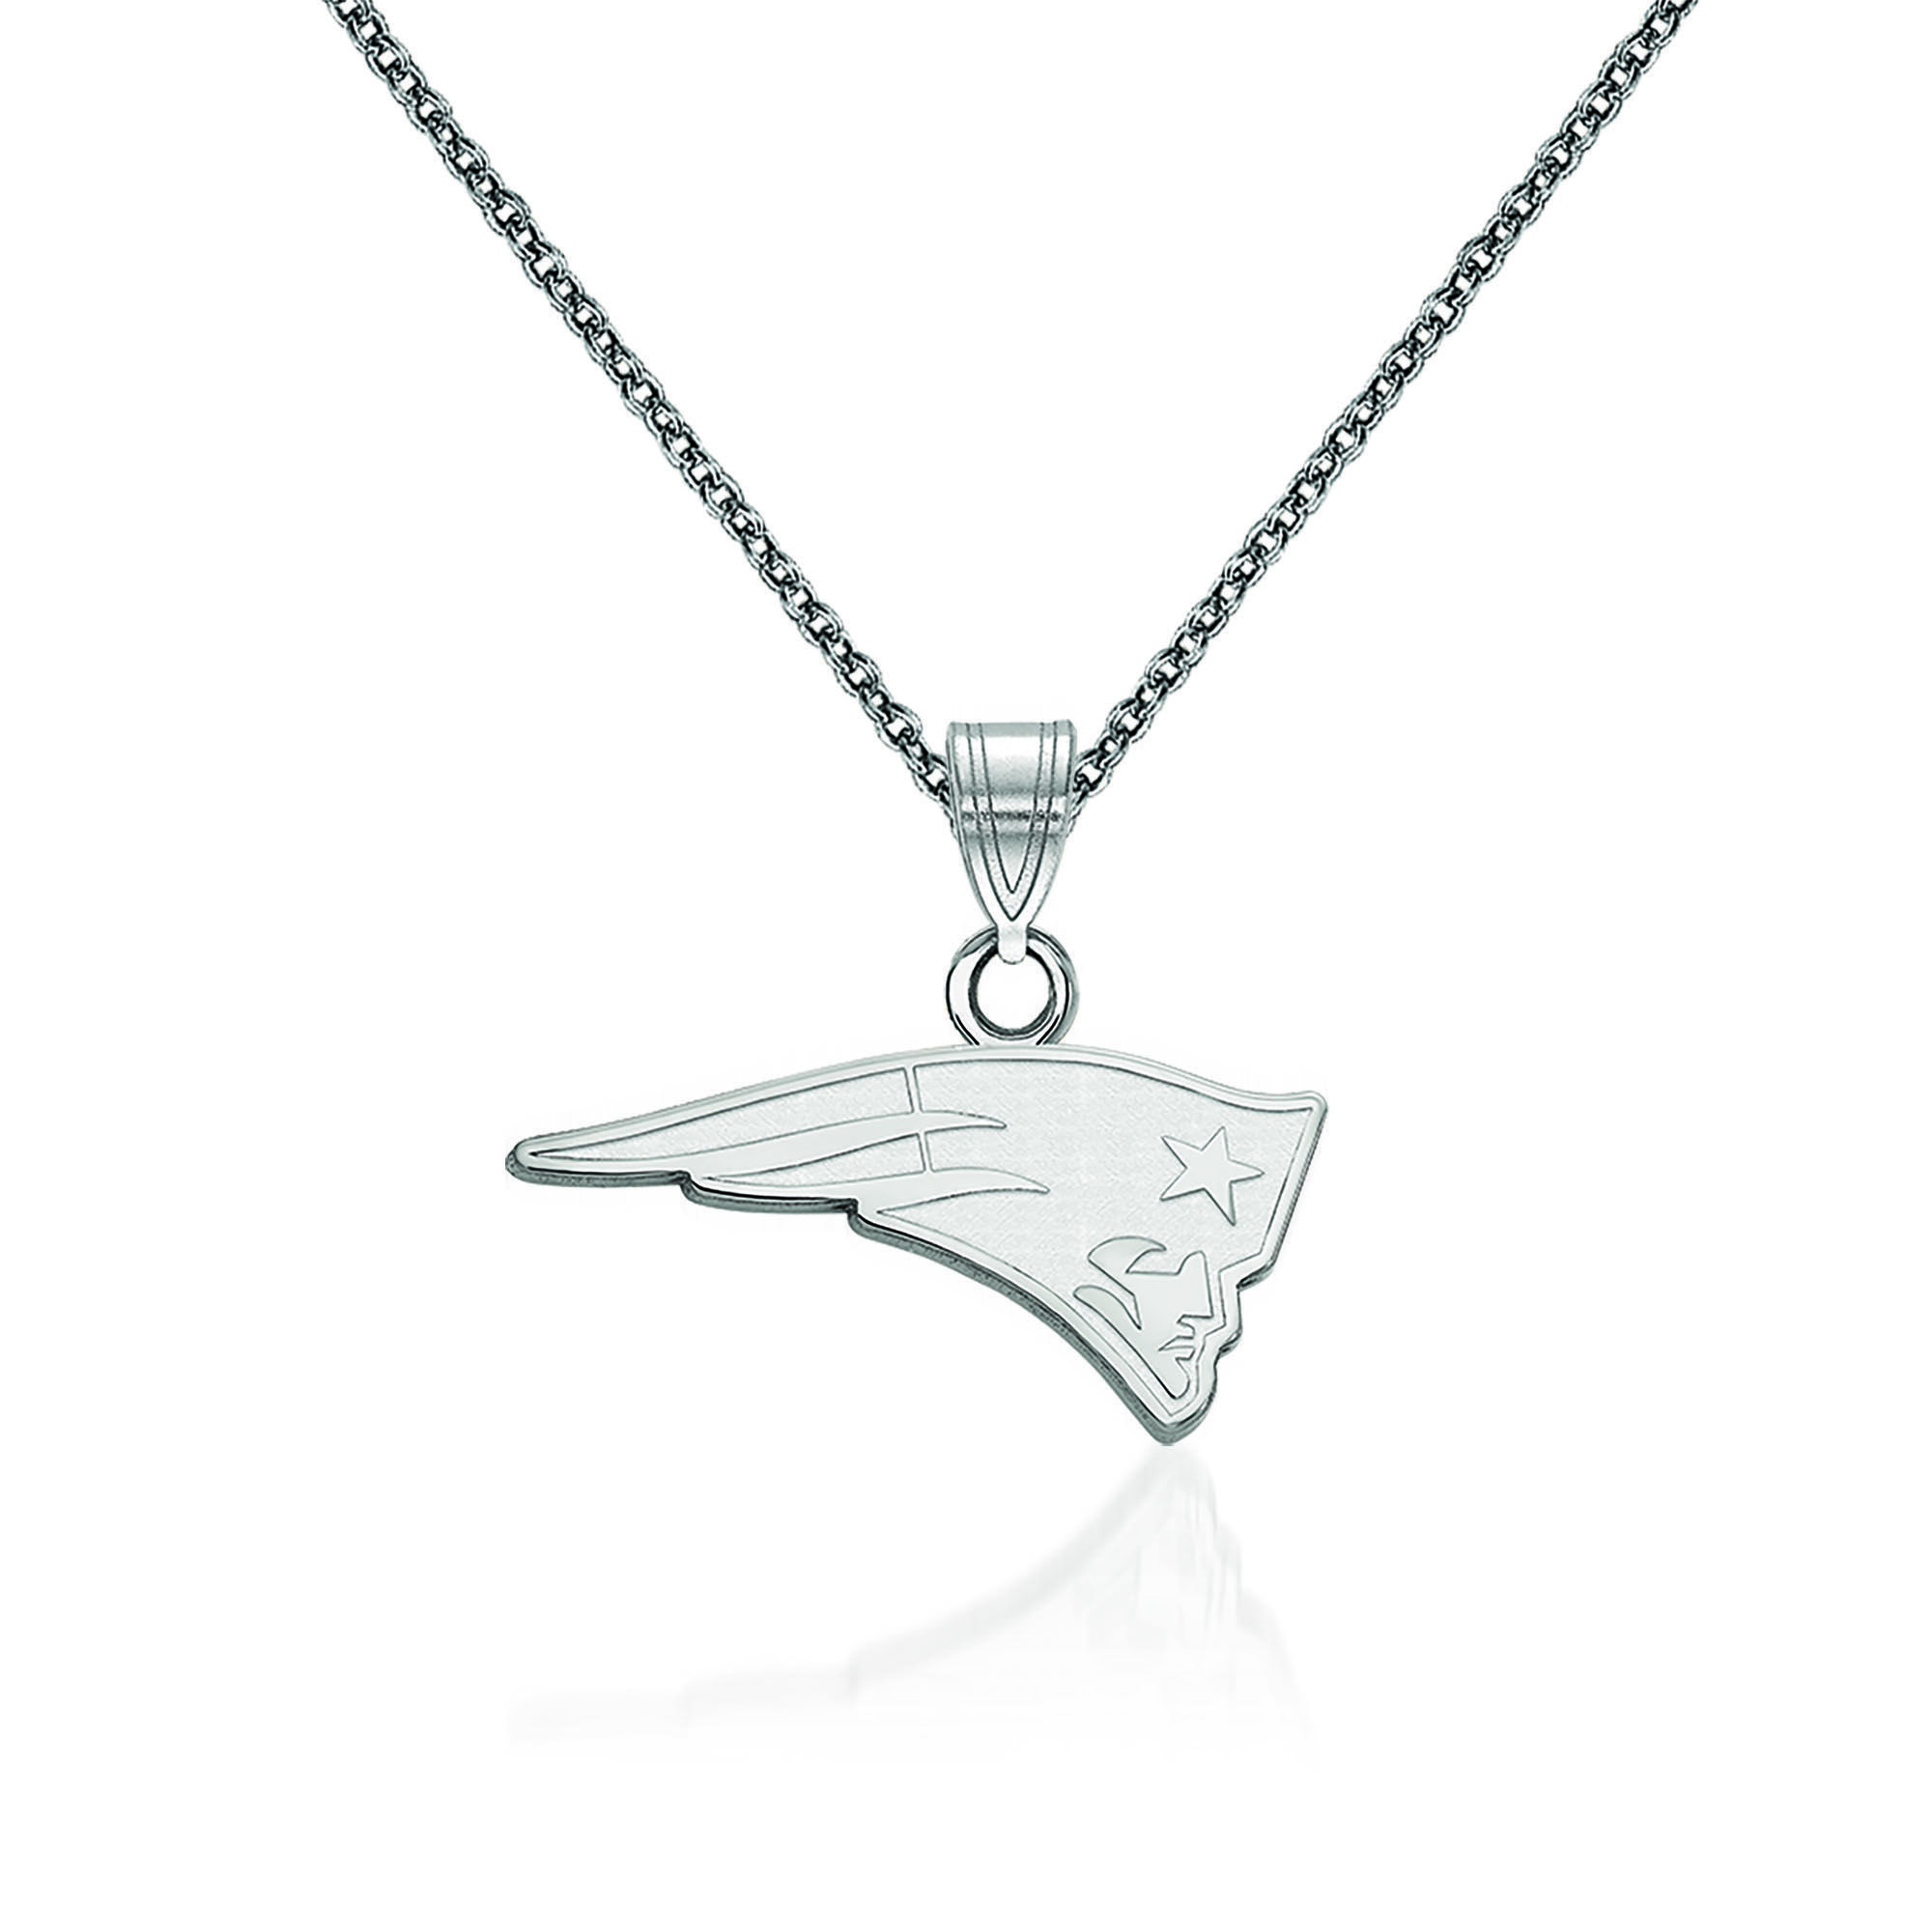 Sterling Silver Rhodium Plated Cleveland Browns Small Pendant w//Necklace 18 in Length Sterling Silver